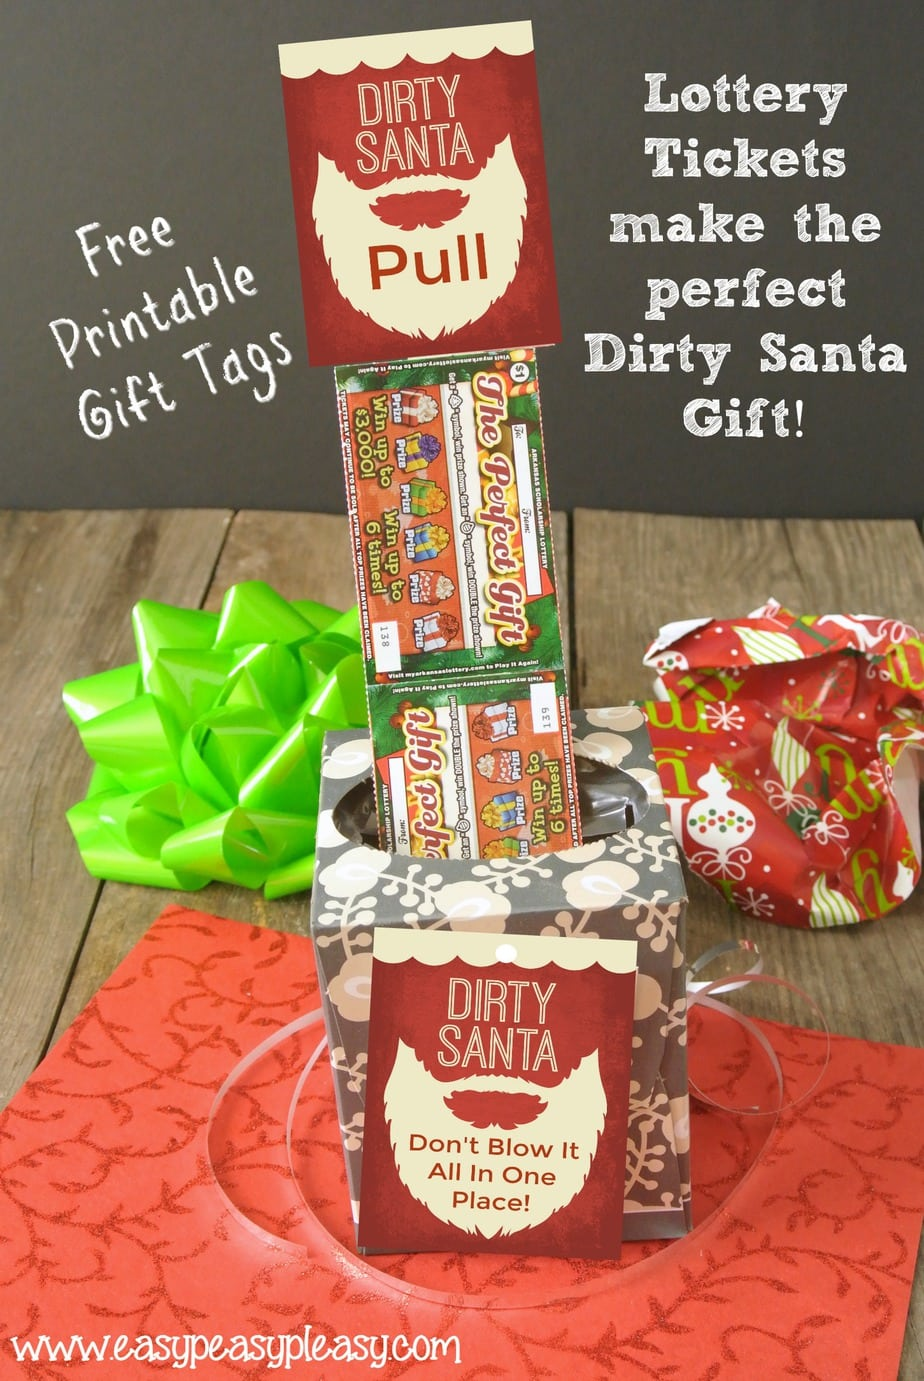 Lottery Tickets make the perfect Dirty Santa Gift. Someone will be mad when they open a box of tissue until they pull out lottery tickets. Free Printable Gift tags!